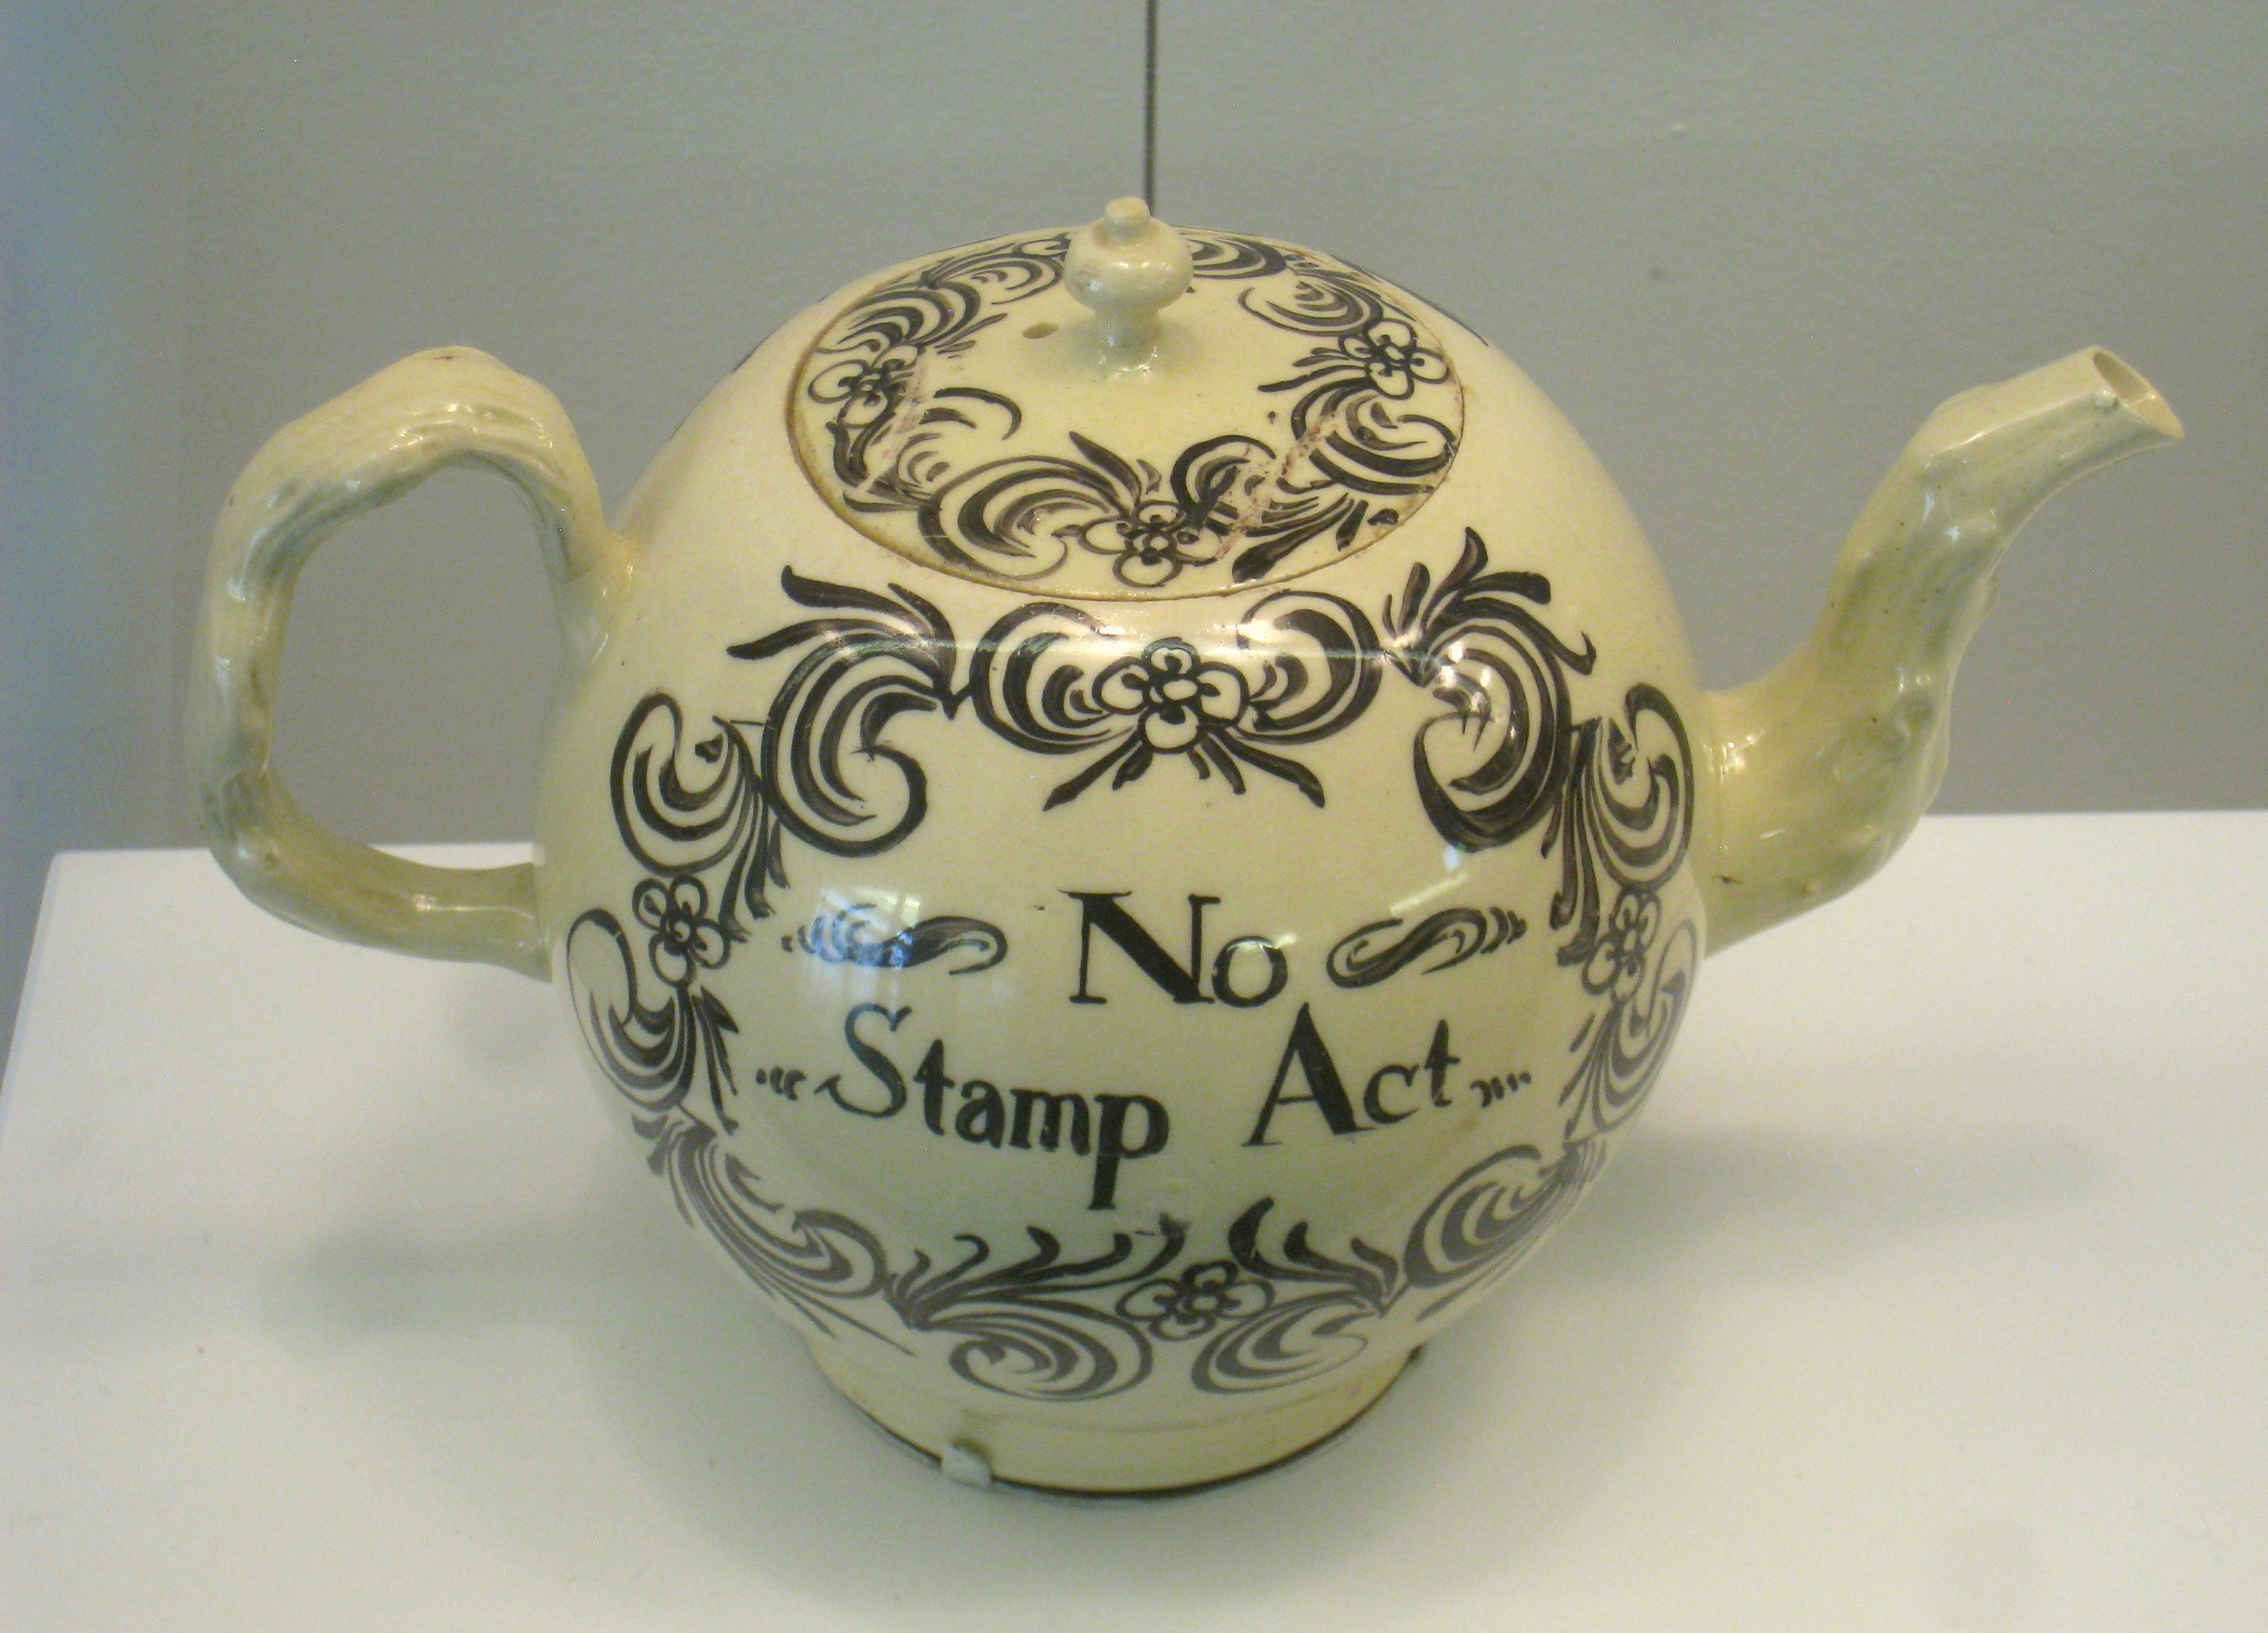 collection stamp act teapot pictures happy easter day file nmah dc 8802 jpg file nmah dc 8802 jpg